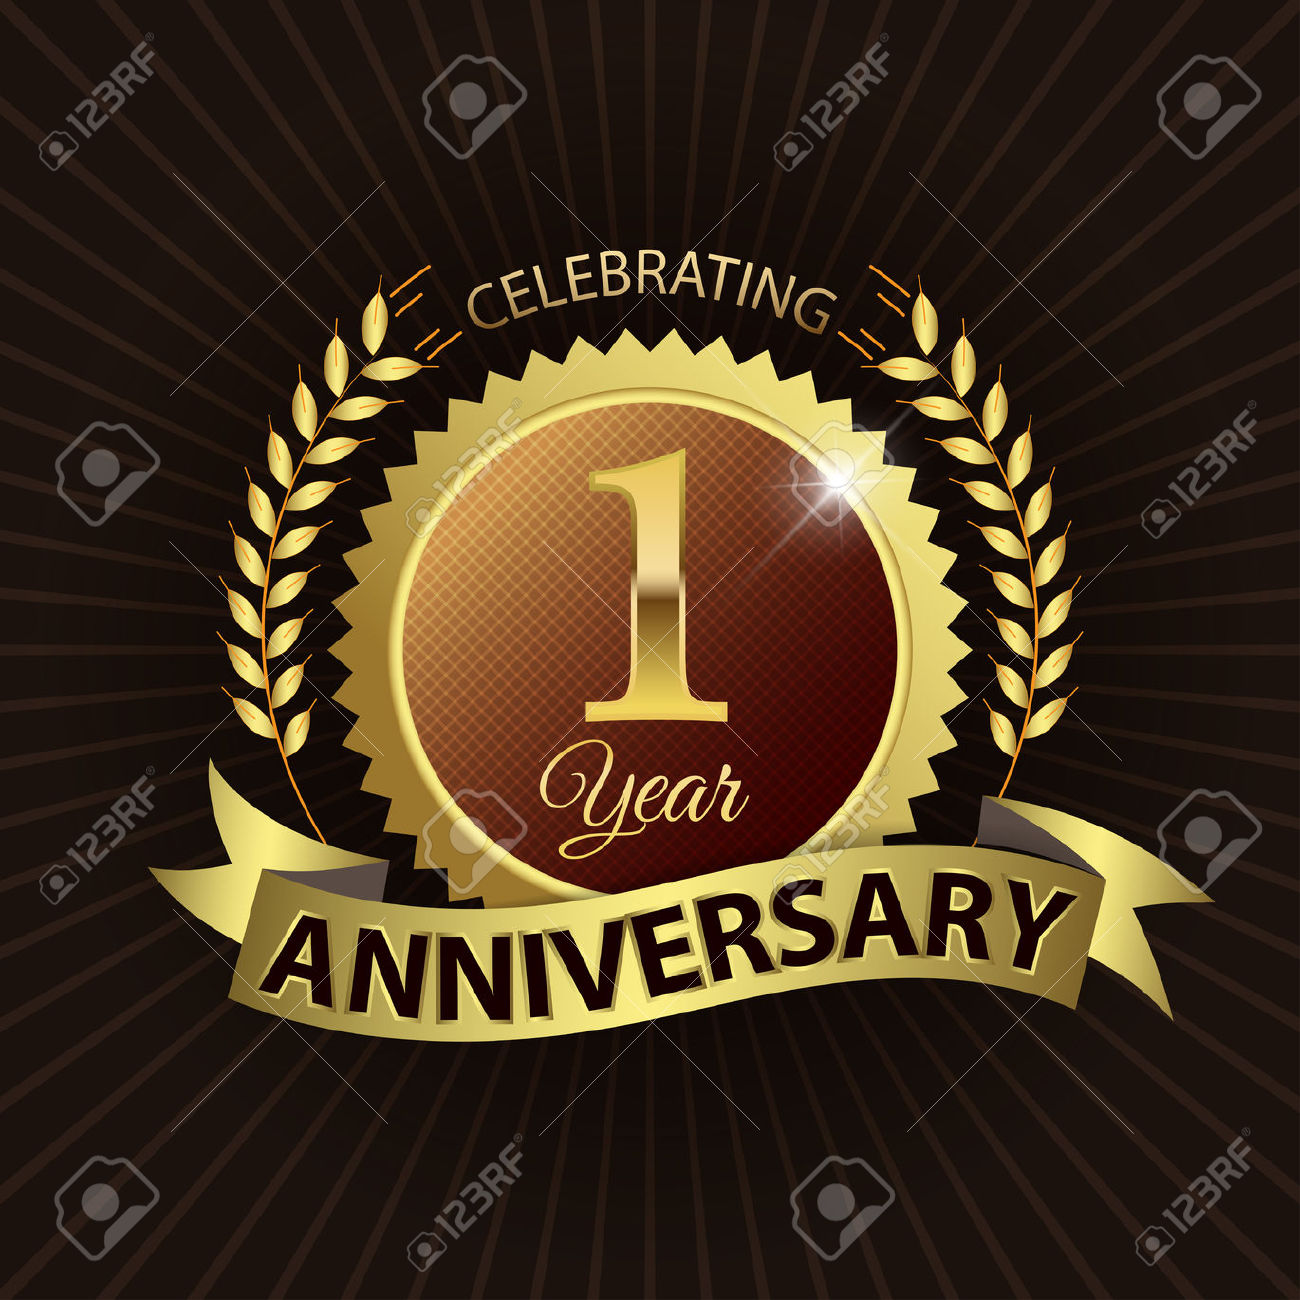 1 year anniversary celebration clipart picture download 2,382 One Year Anniversary Stock Illustrations, Cliparts And ... picture download